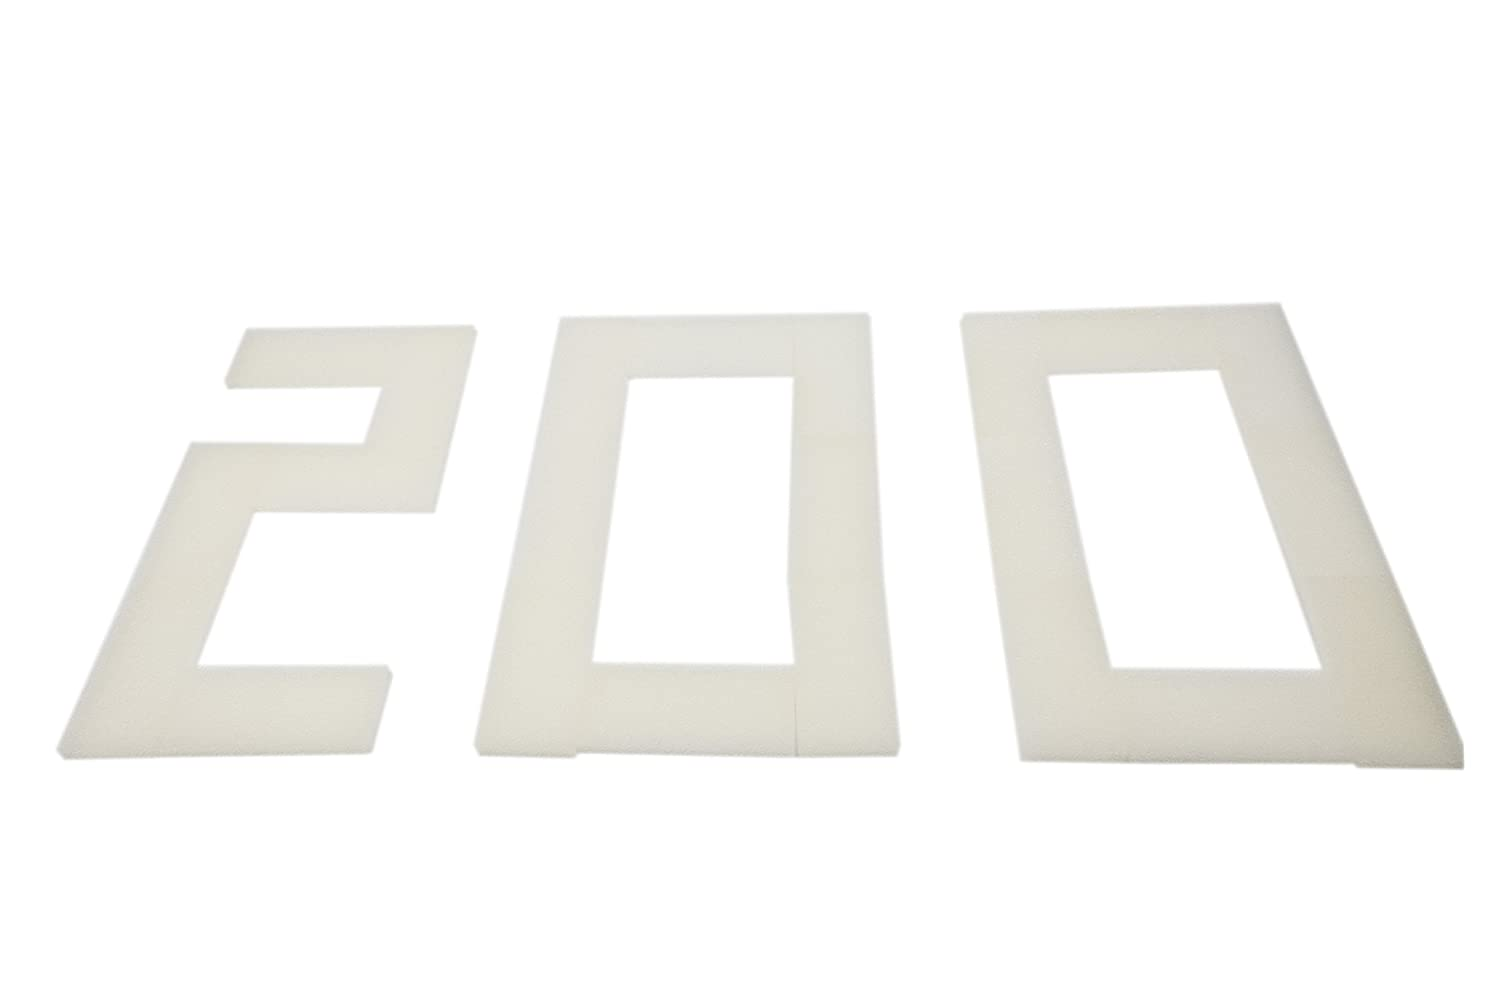 Pack of 200 LTWHOME Compatible Foam Filters Non-Branded But Suitable for Fluval U2 Filter (Pack of 200)